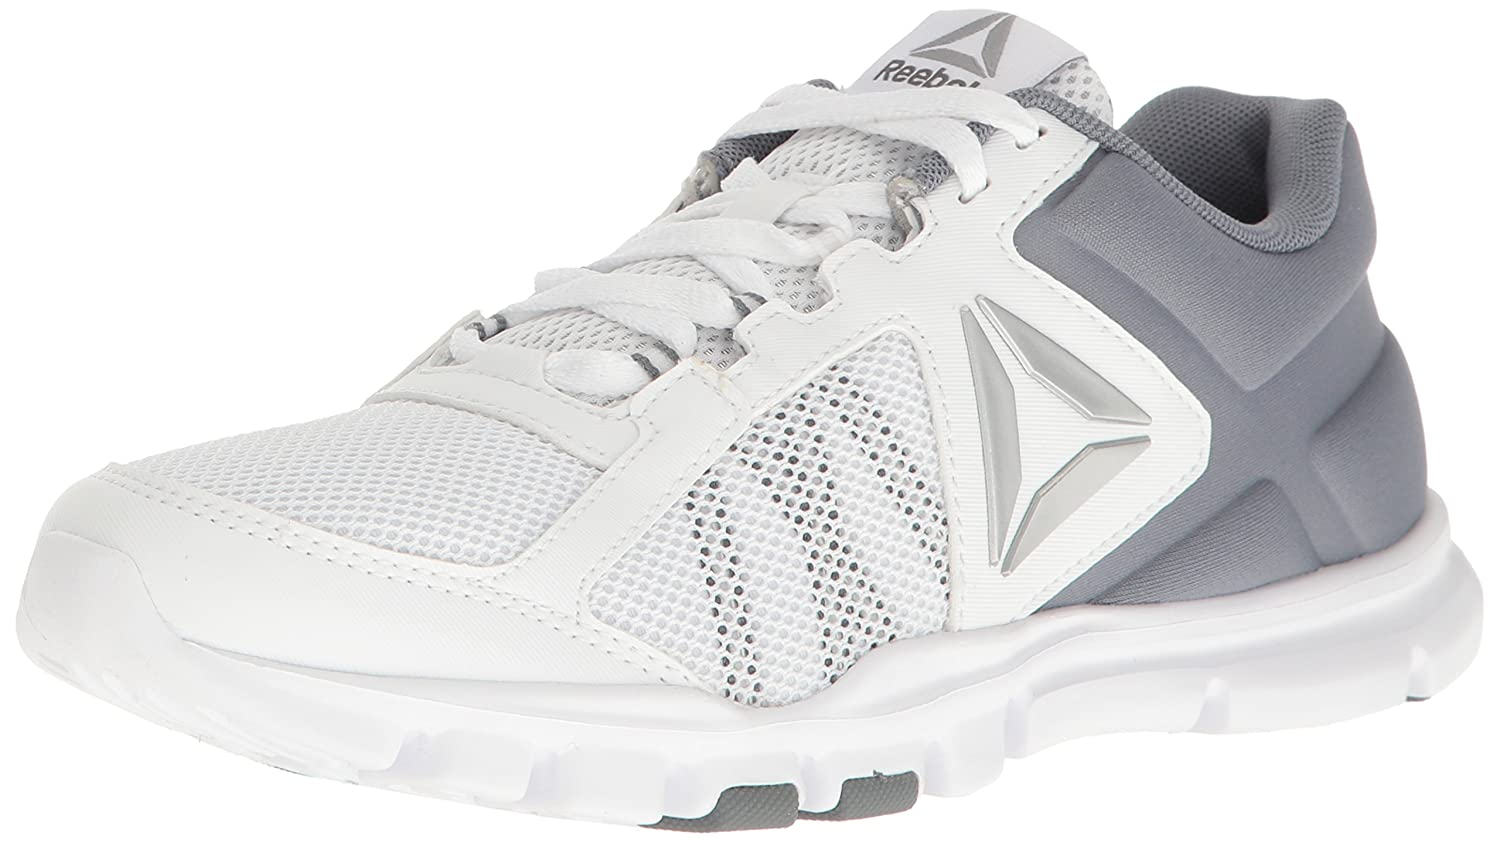 Reebok Women's Yourflex Trainette 9.0 MT Cross-Trainer Shoe B06XWLB8NY 12 B(M) US|White/Asteroid Dust/Silver Met/Grey